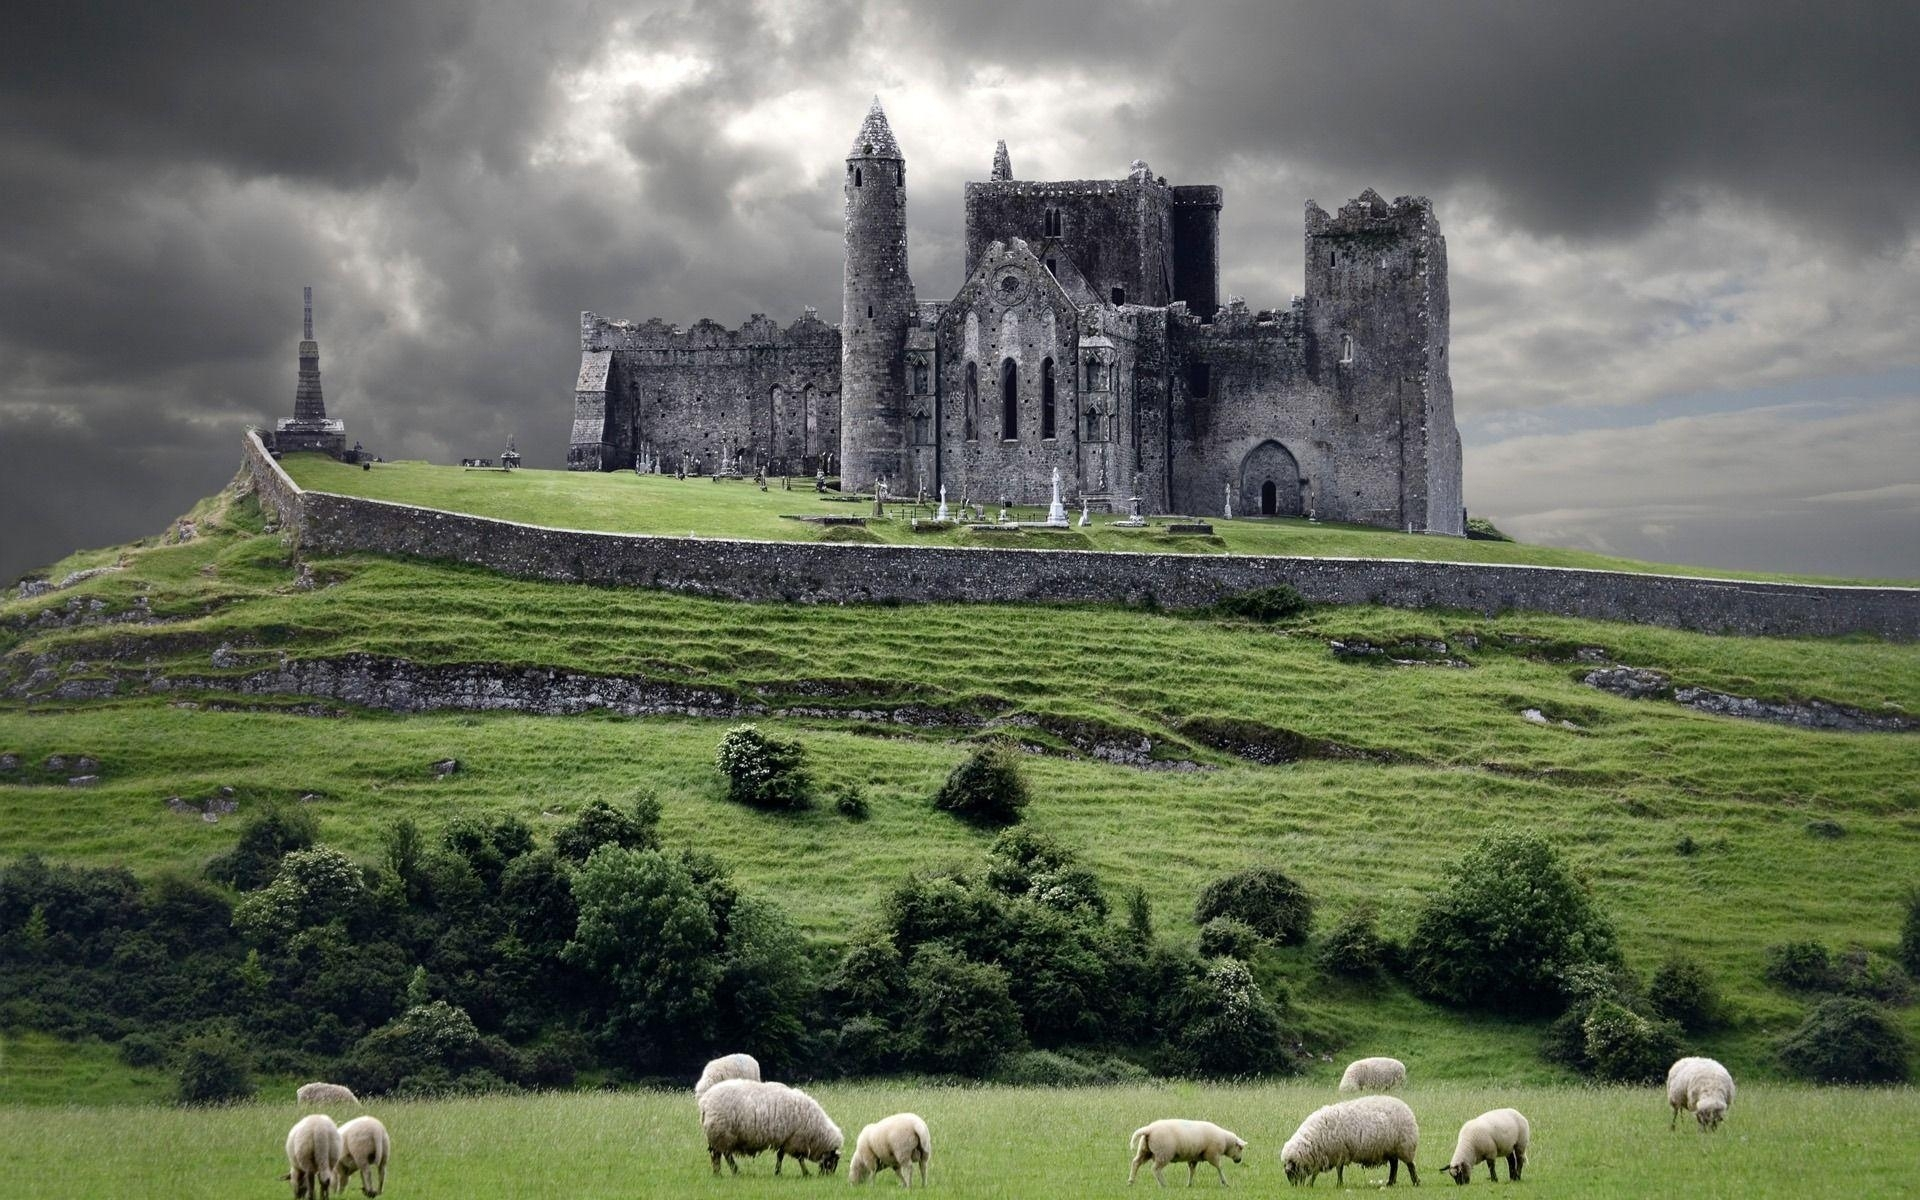 ireland scenery wallpapers - wallpaper cave